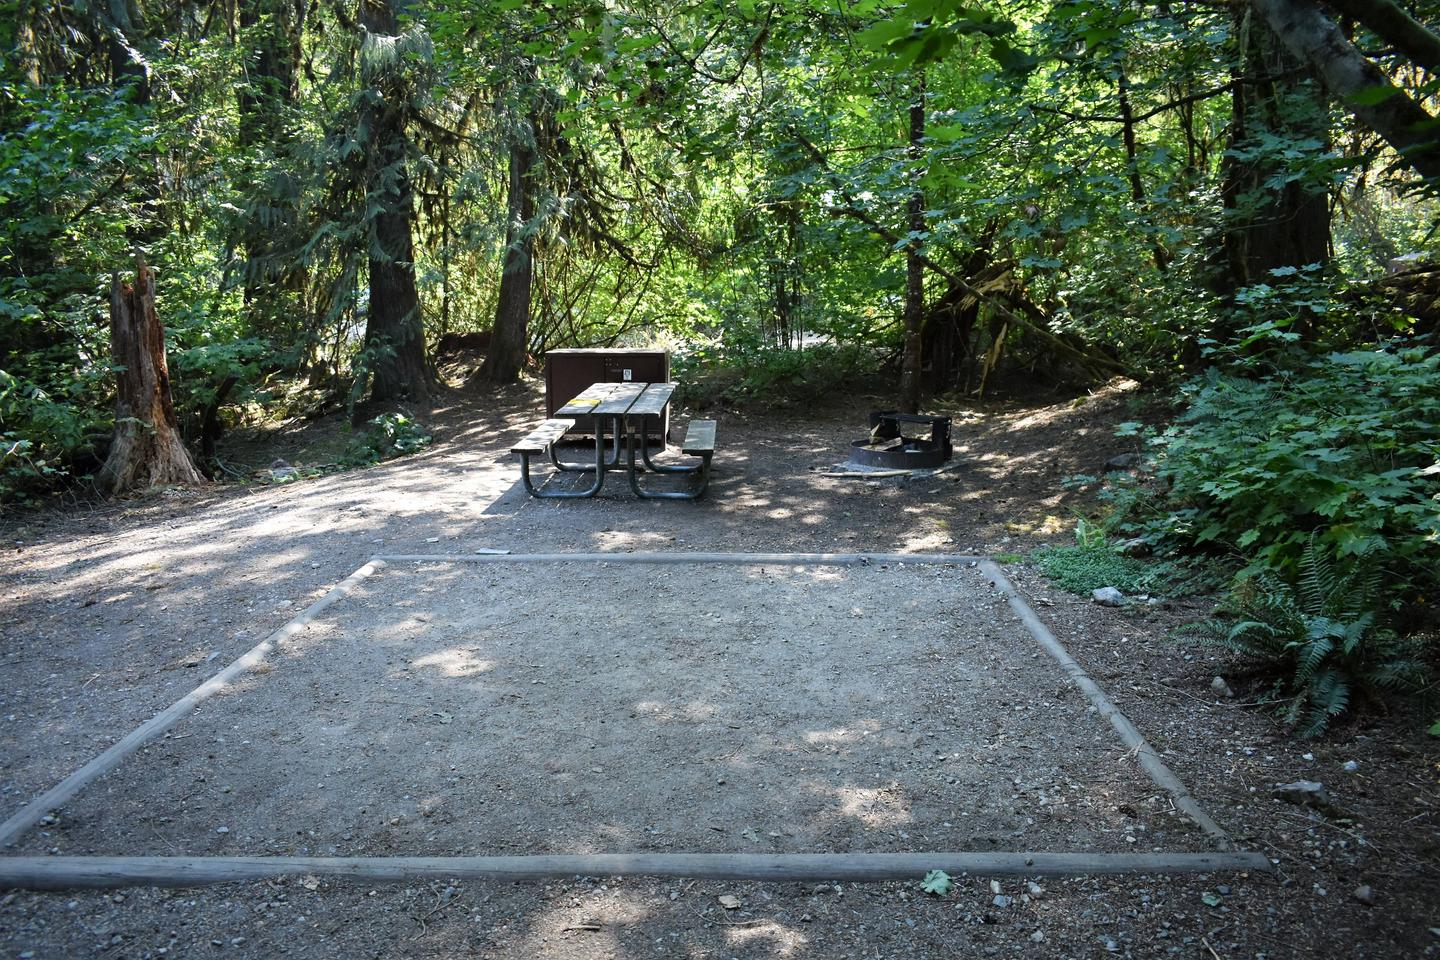 Tent pad, picnic table, food storage locker, and fire ringView of campsite